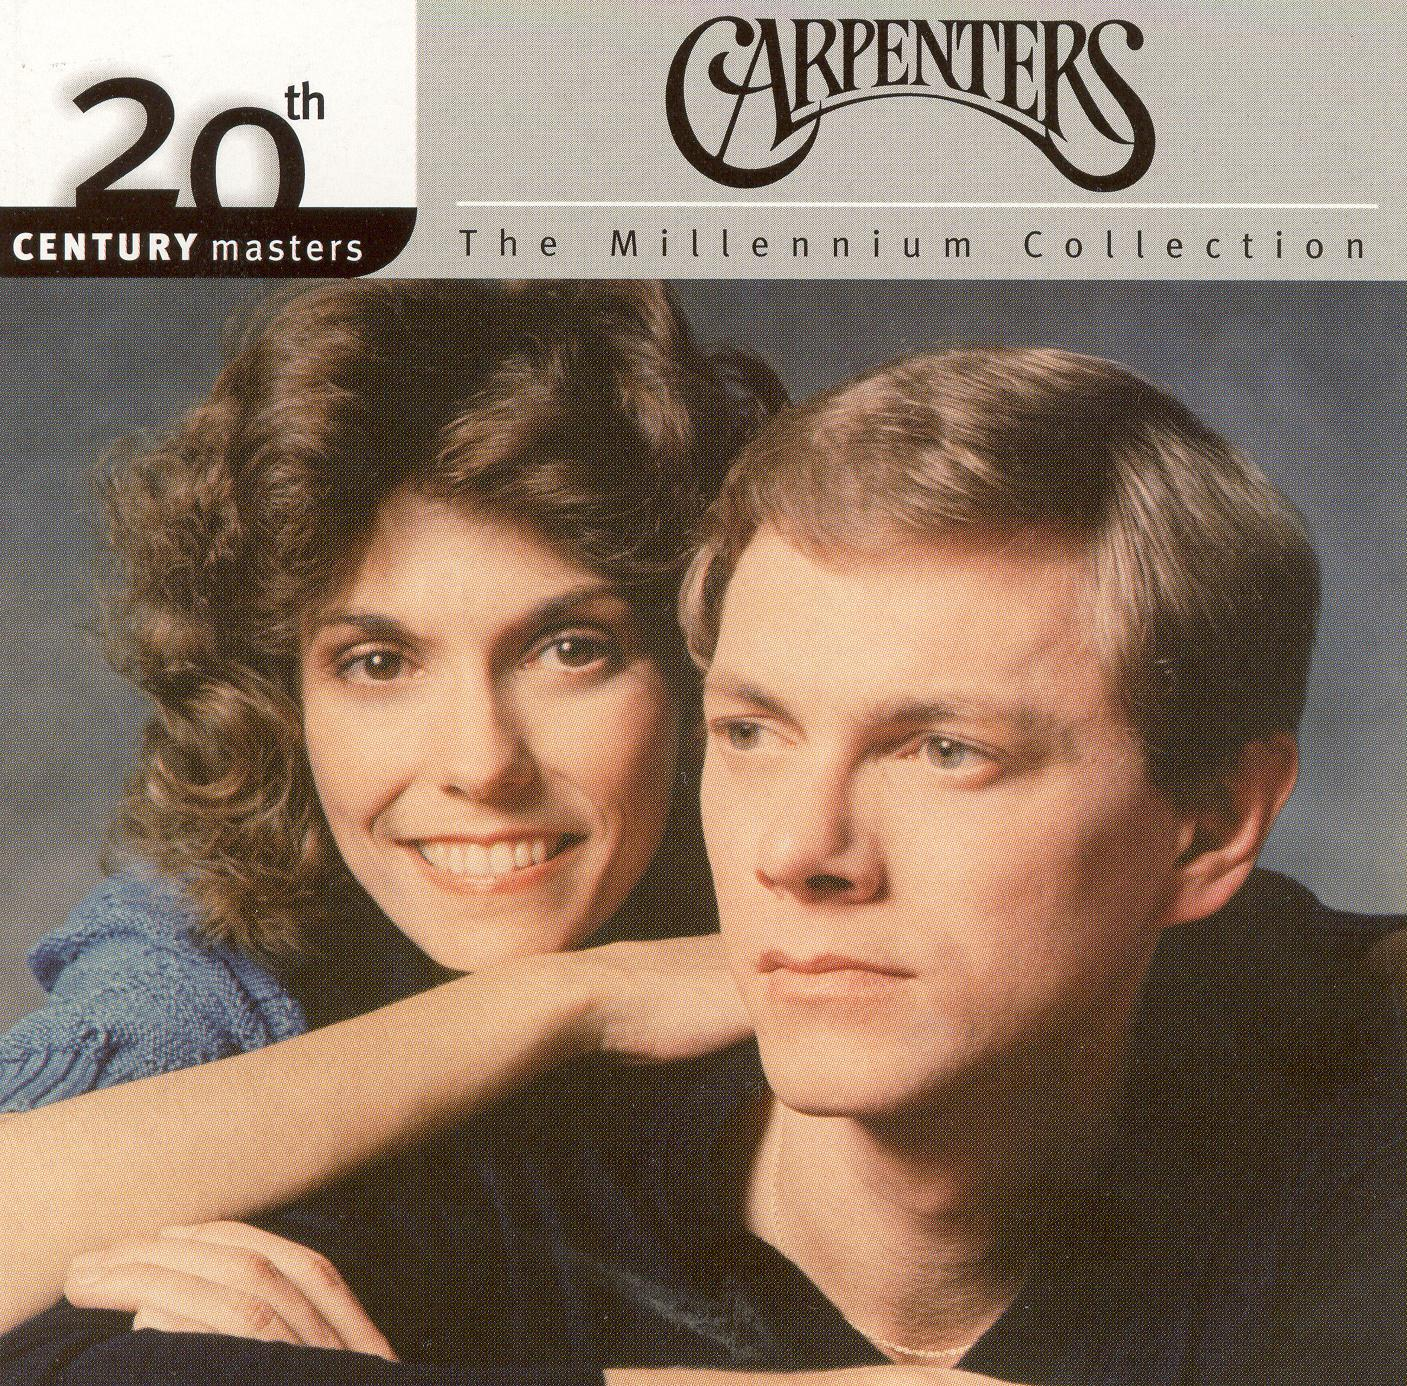 The Carpenters: Gold - Greatest Hits